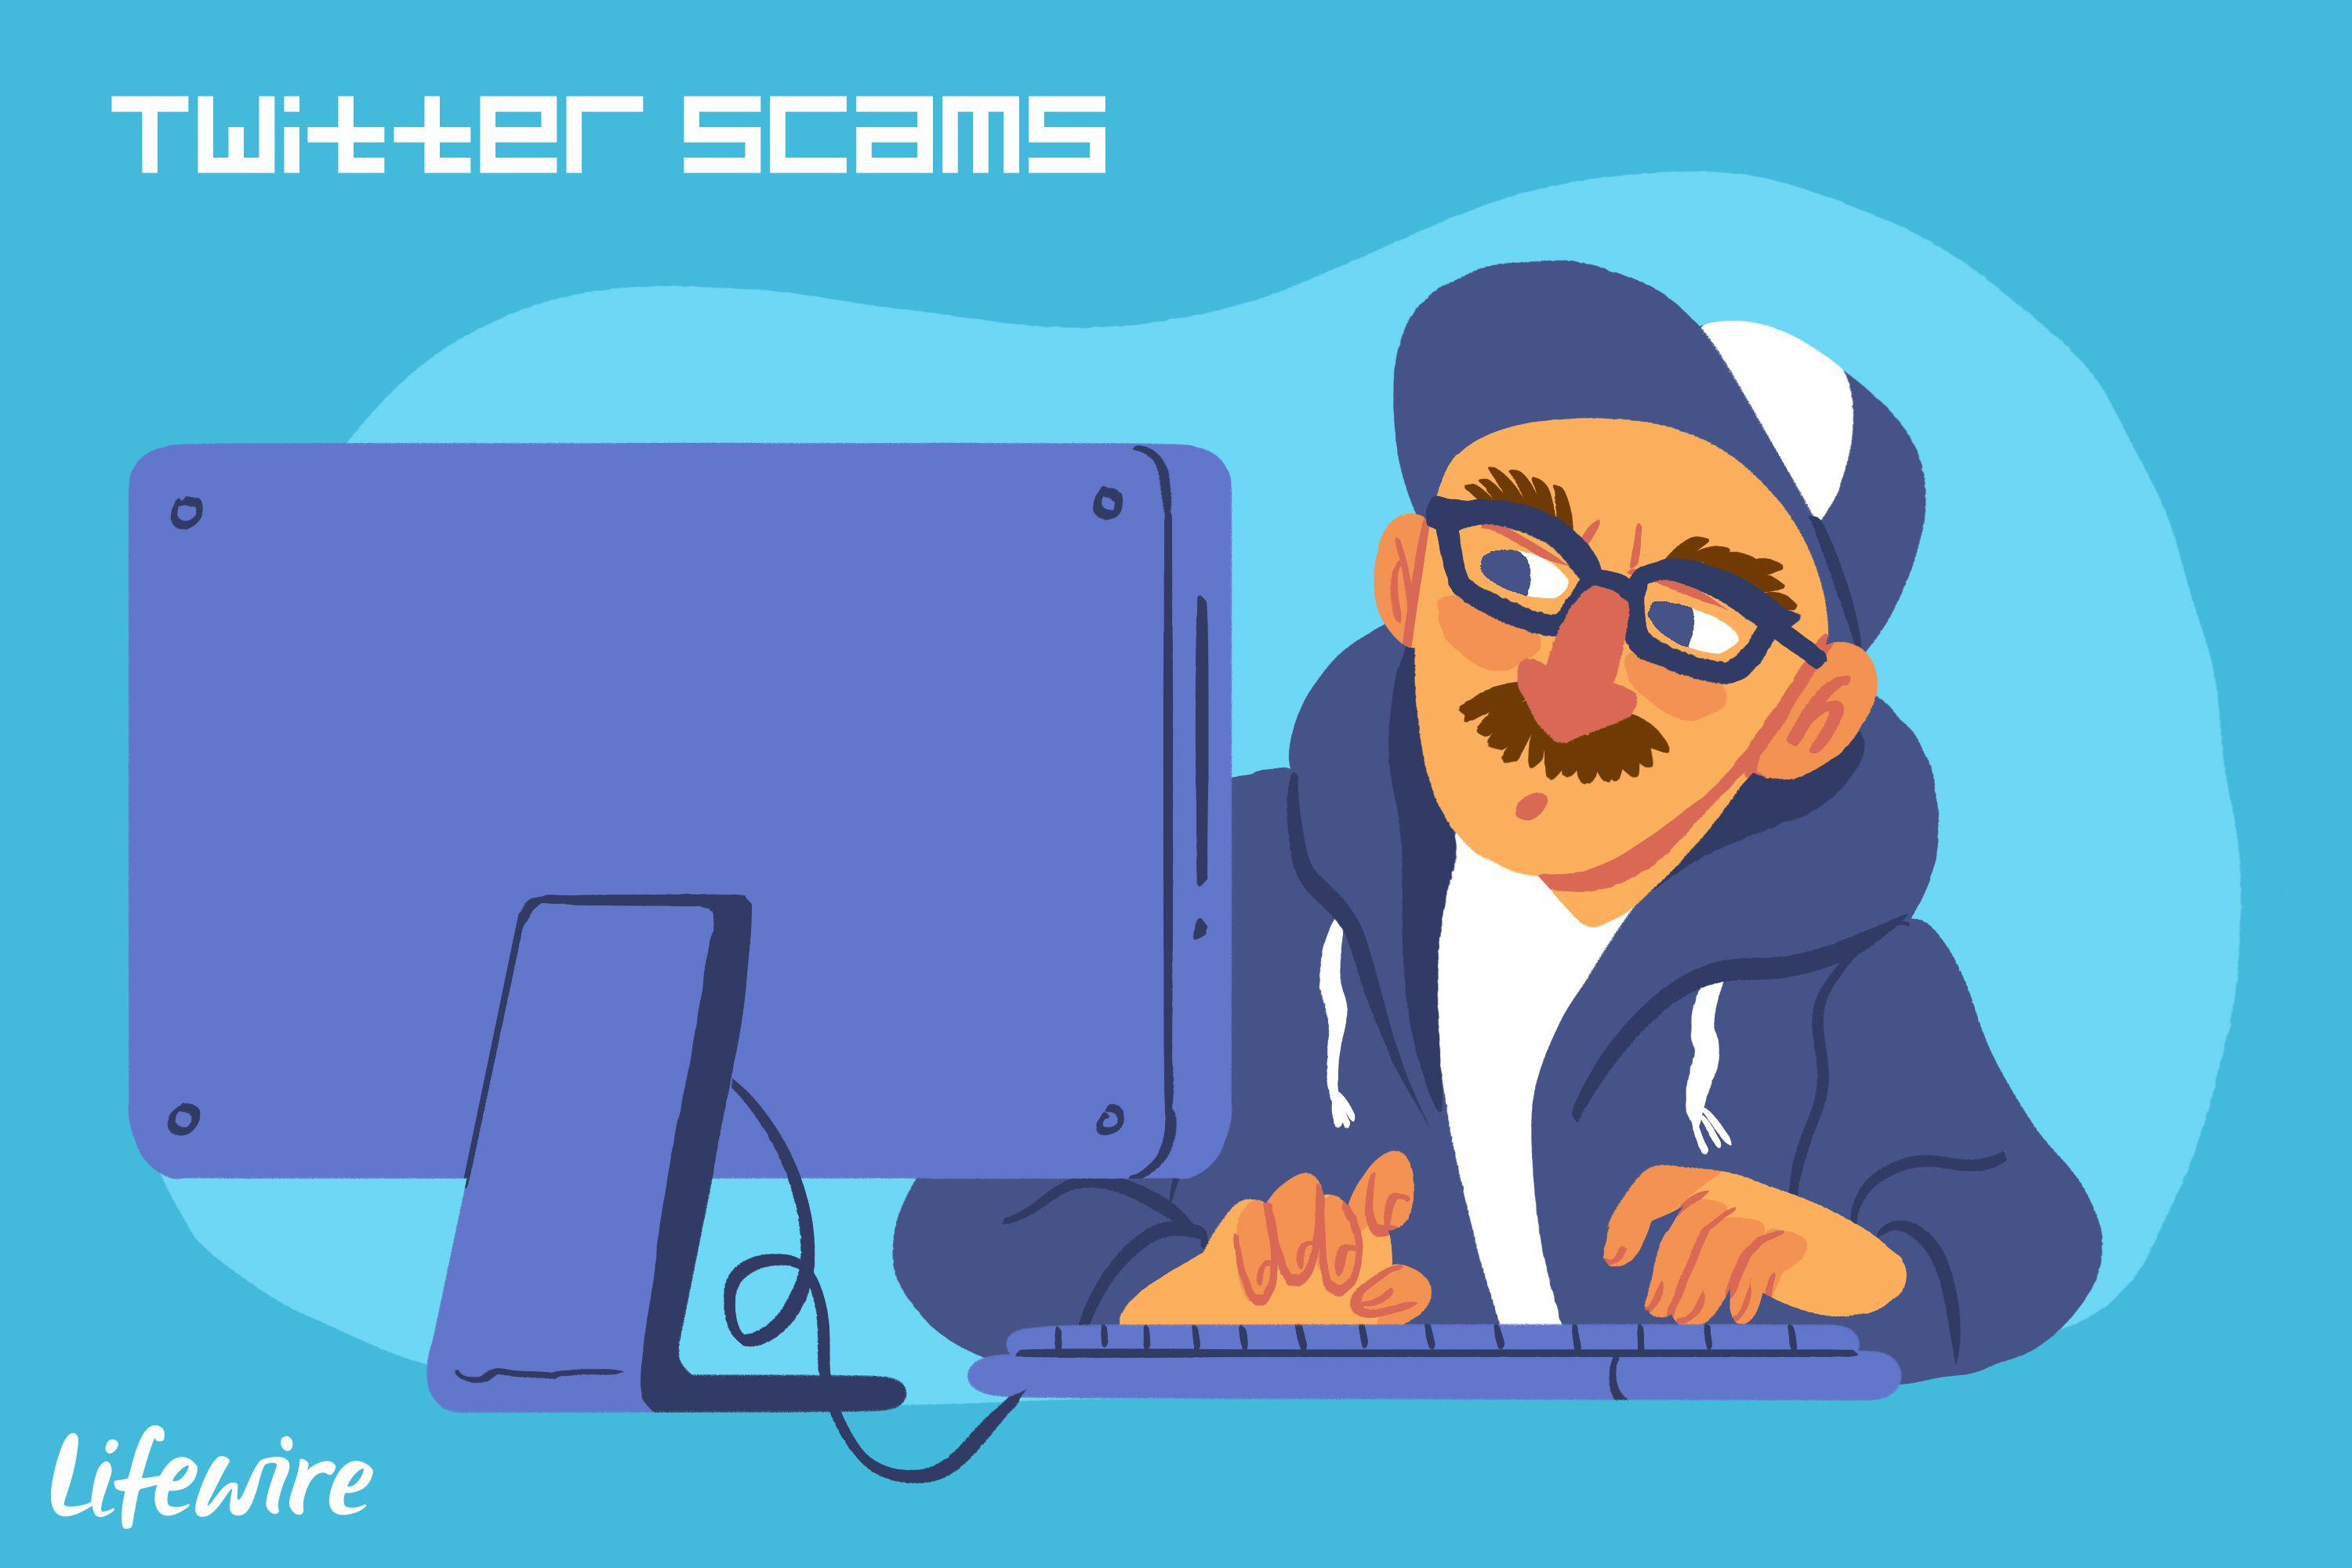 Twitter Scams: How to Identify Them And Protect Yourself